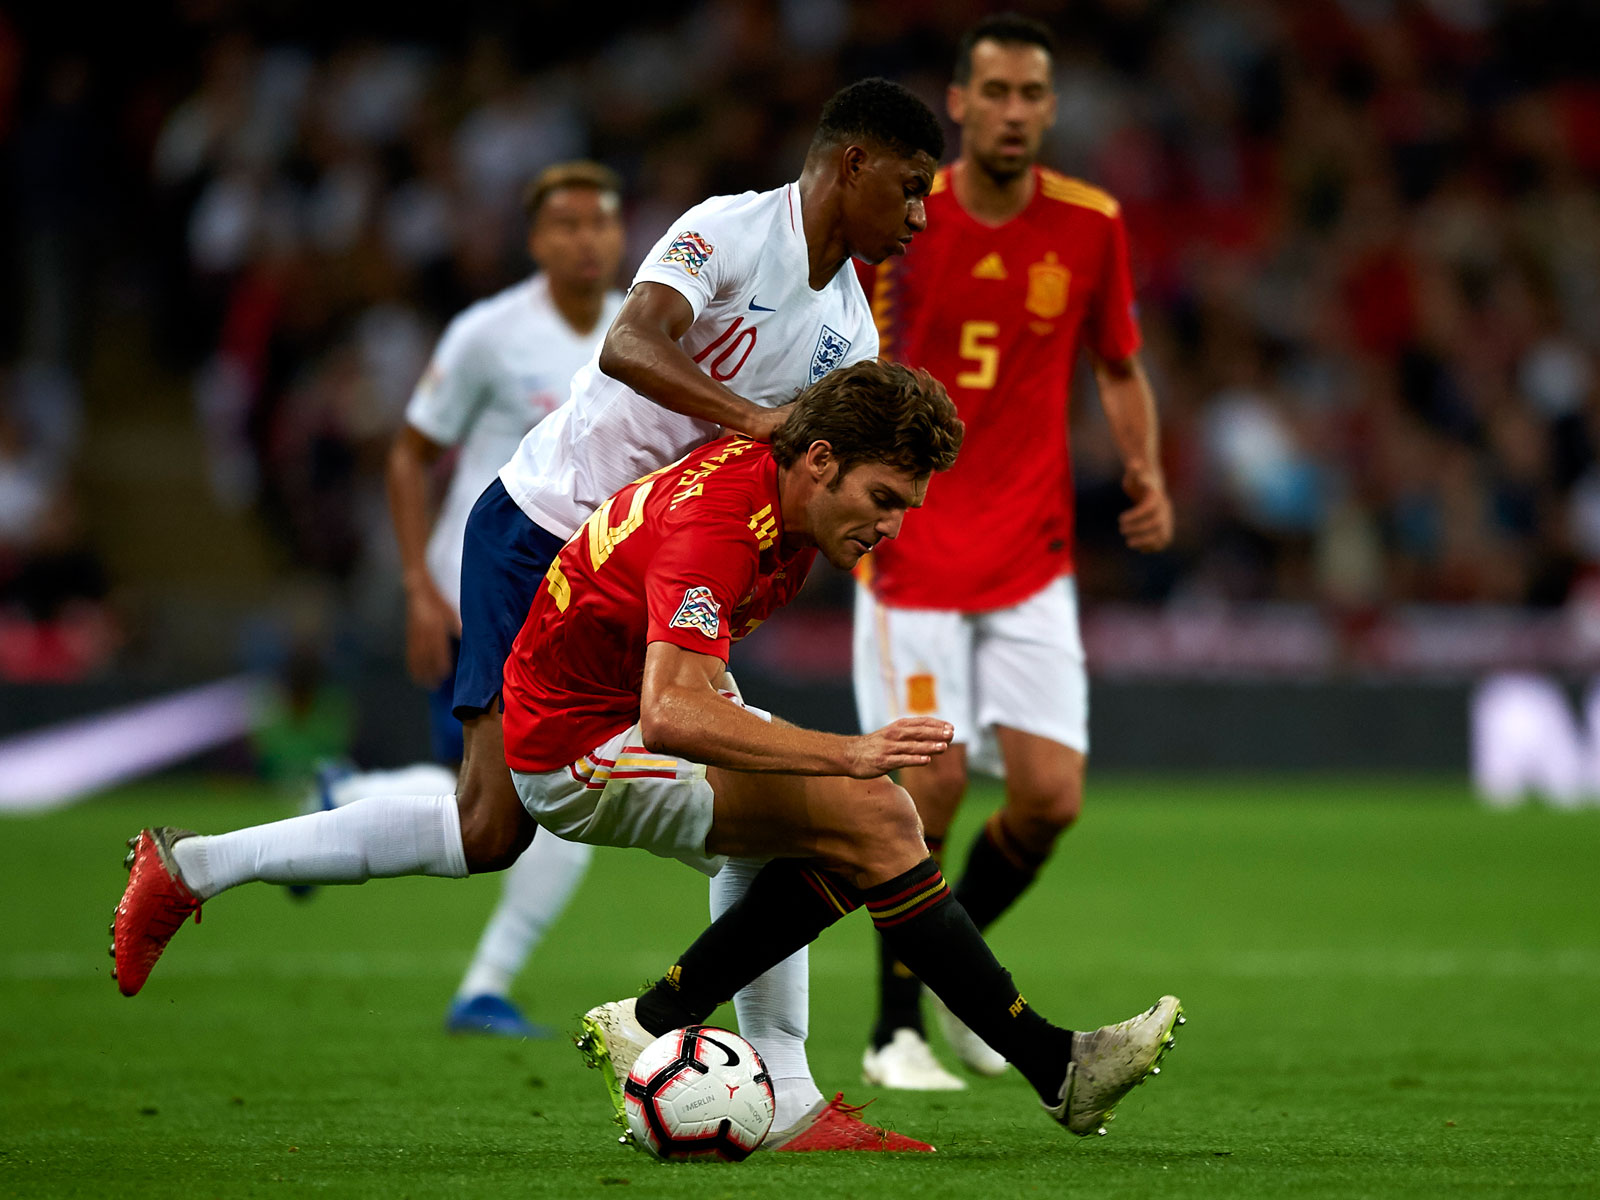 Spain beats England in the UEFA Nations League